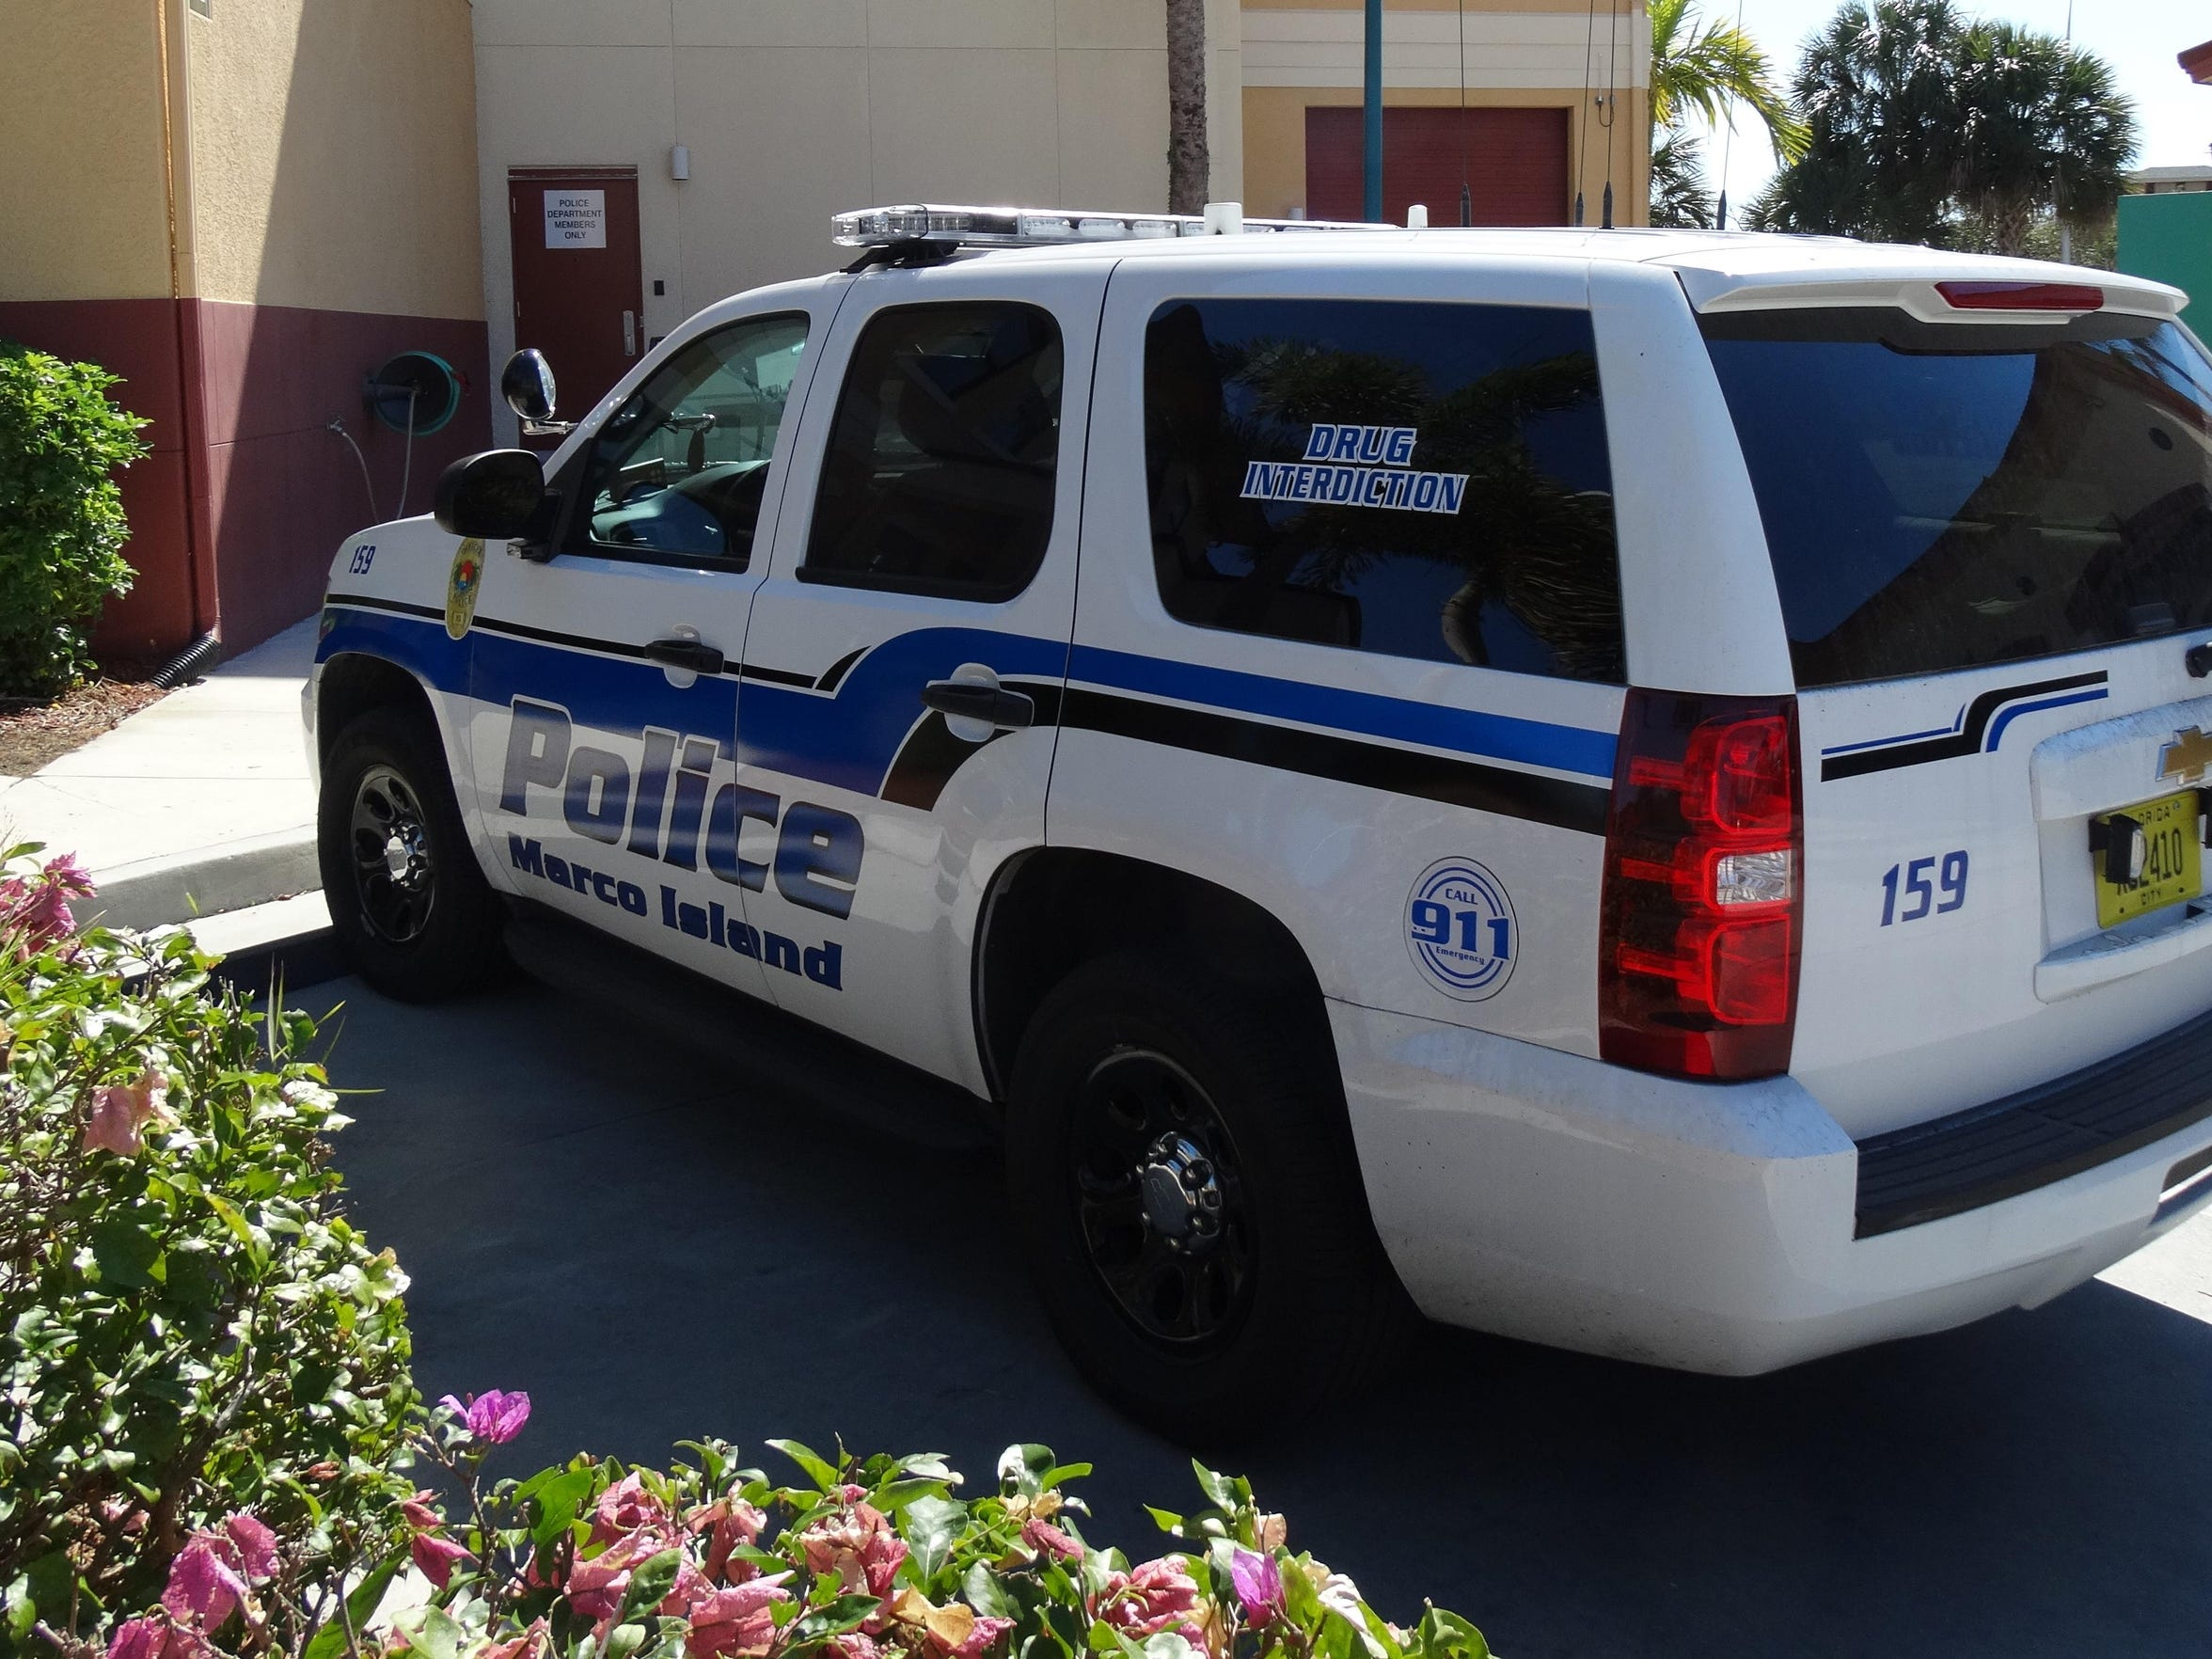 Marco police car